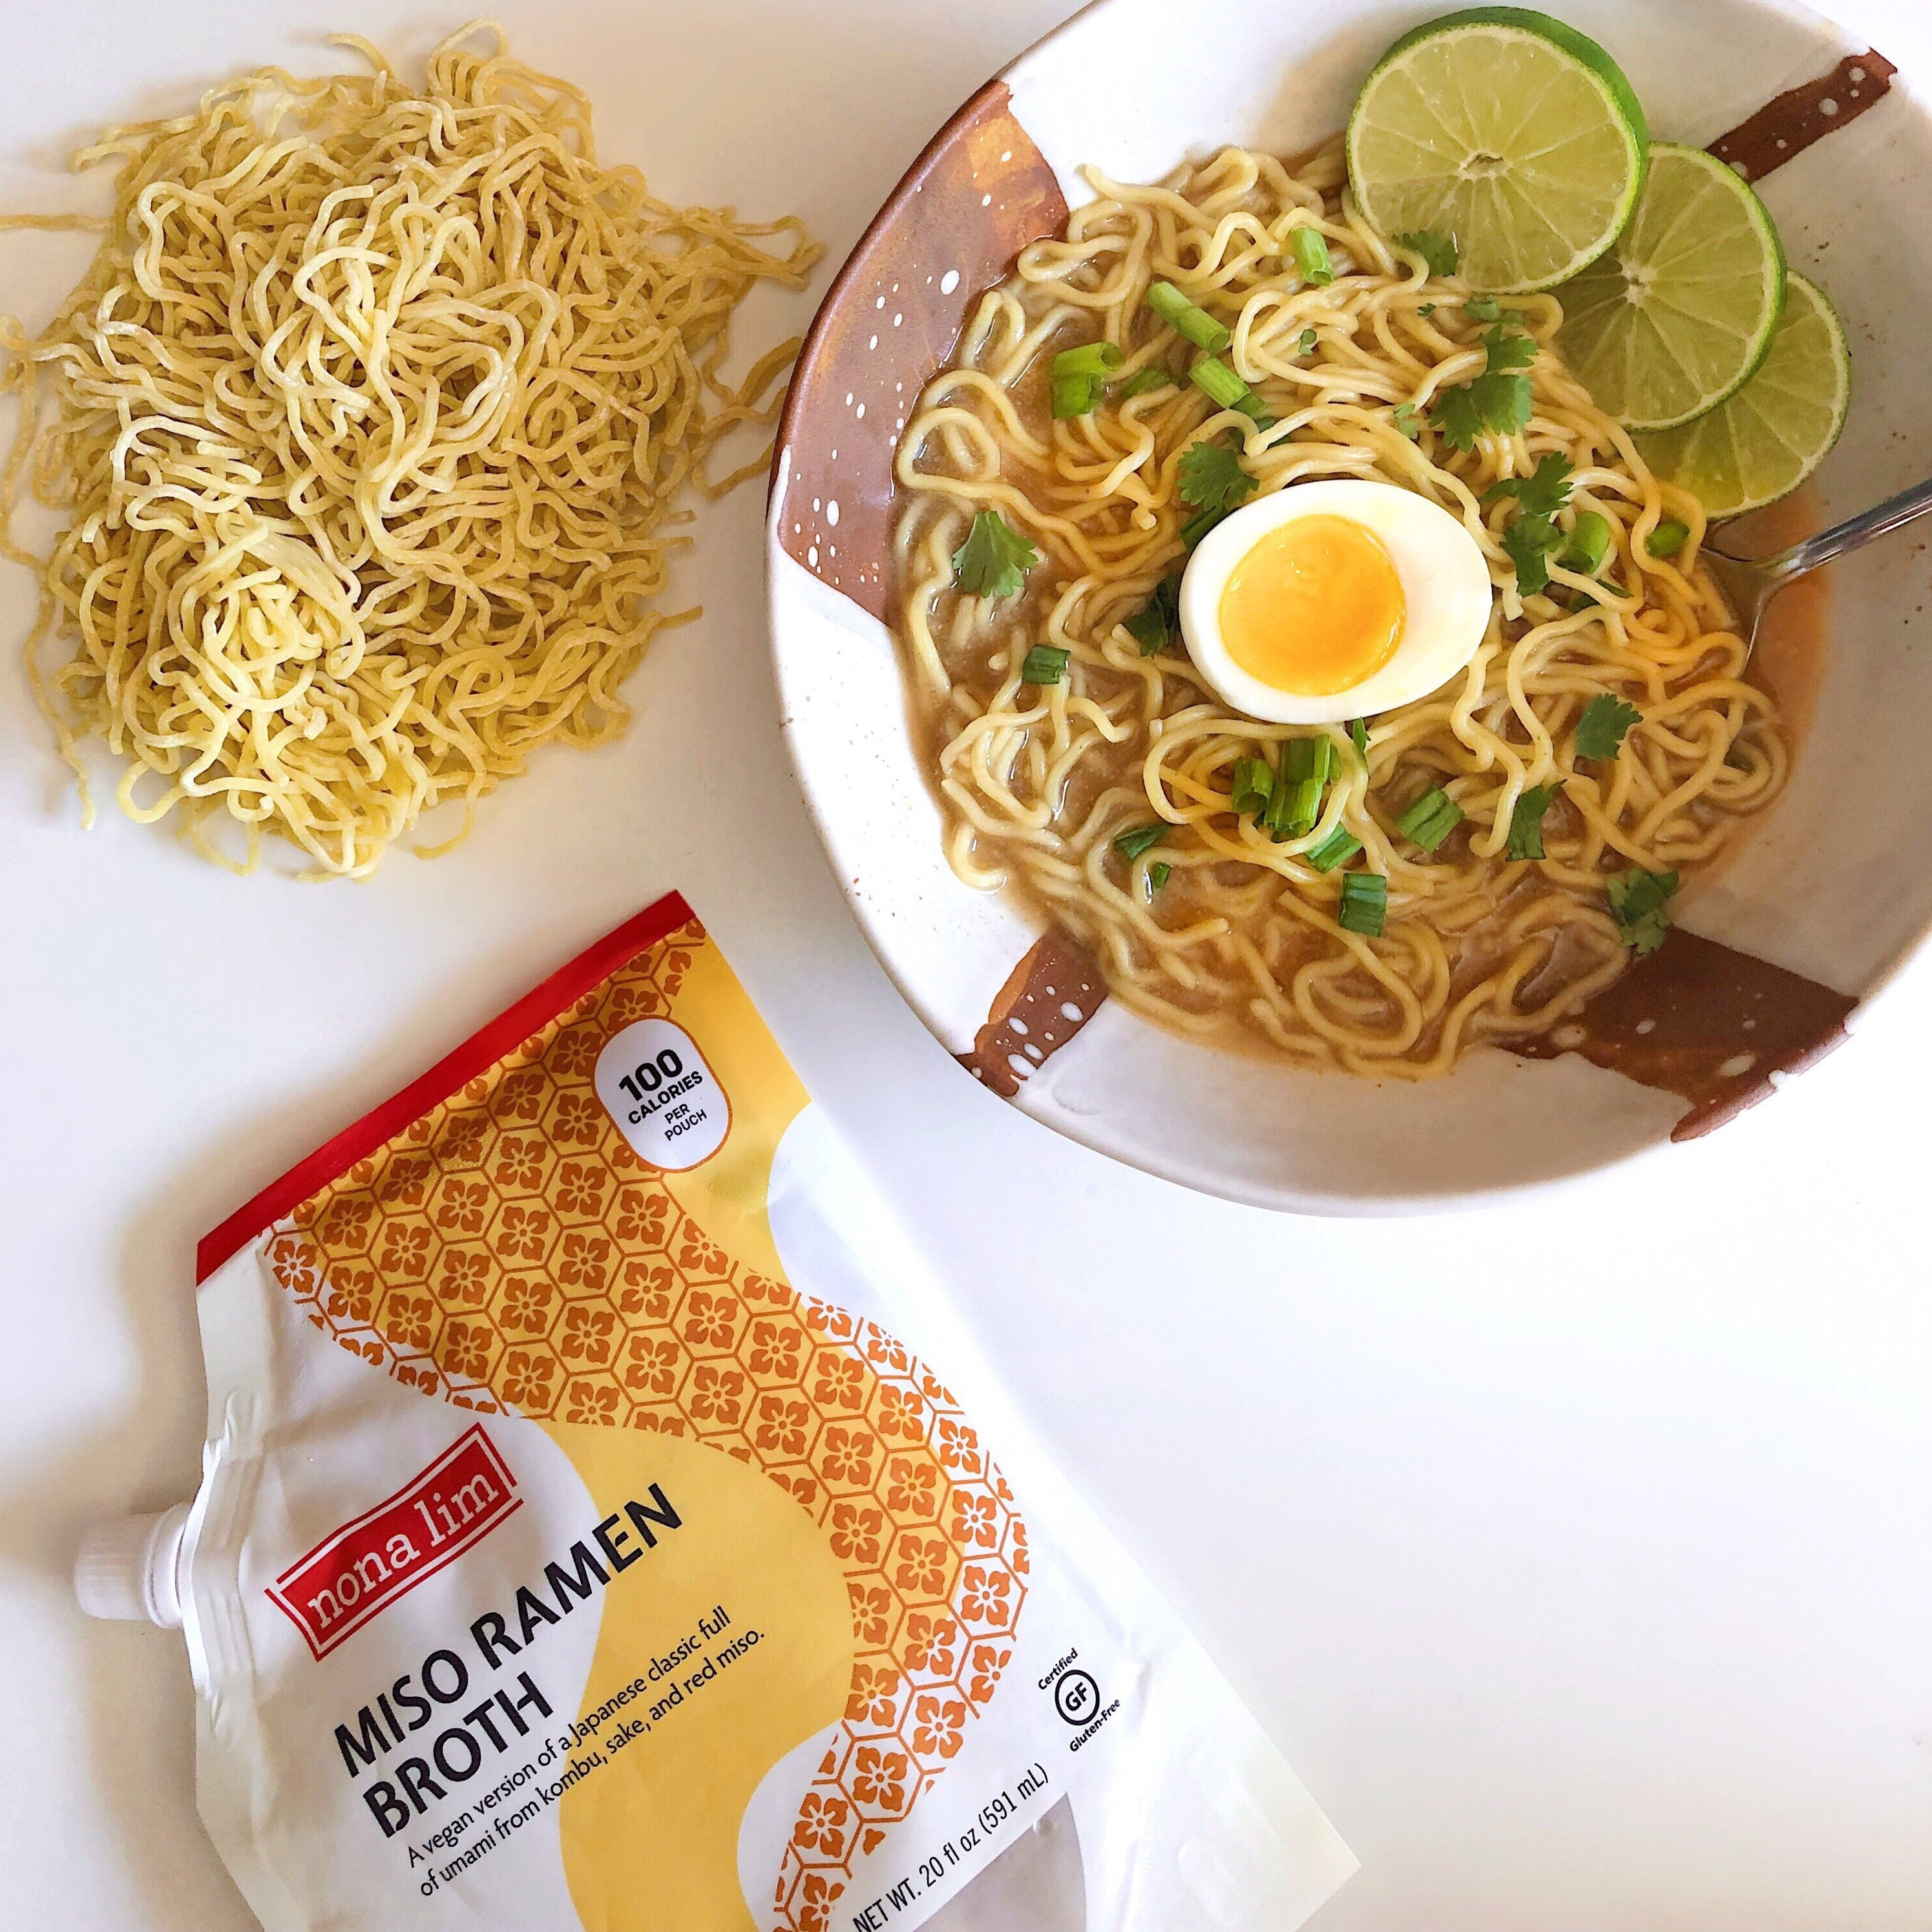 Nona Lim Miso Ramen Broth Pouch with bowl of ramen noodles and soft boiled egg